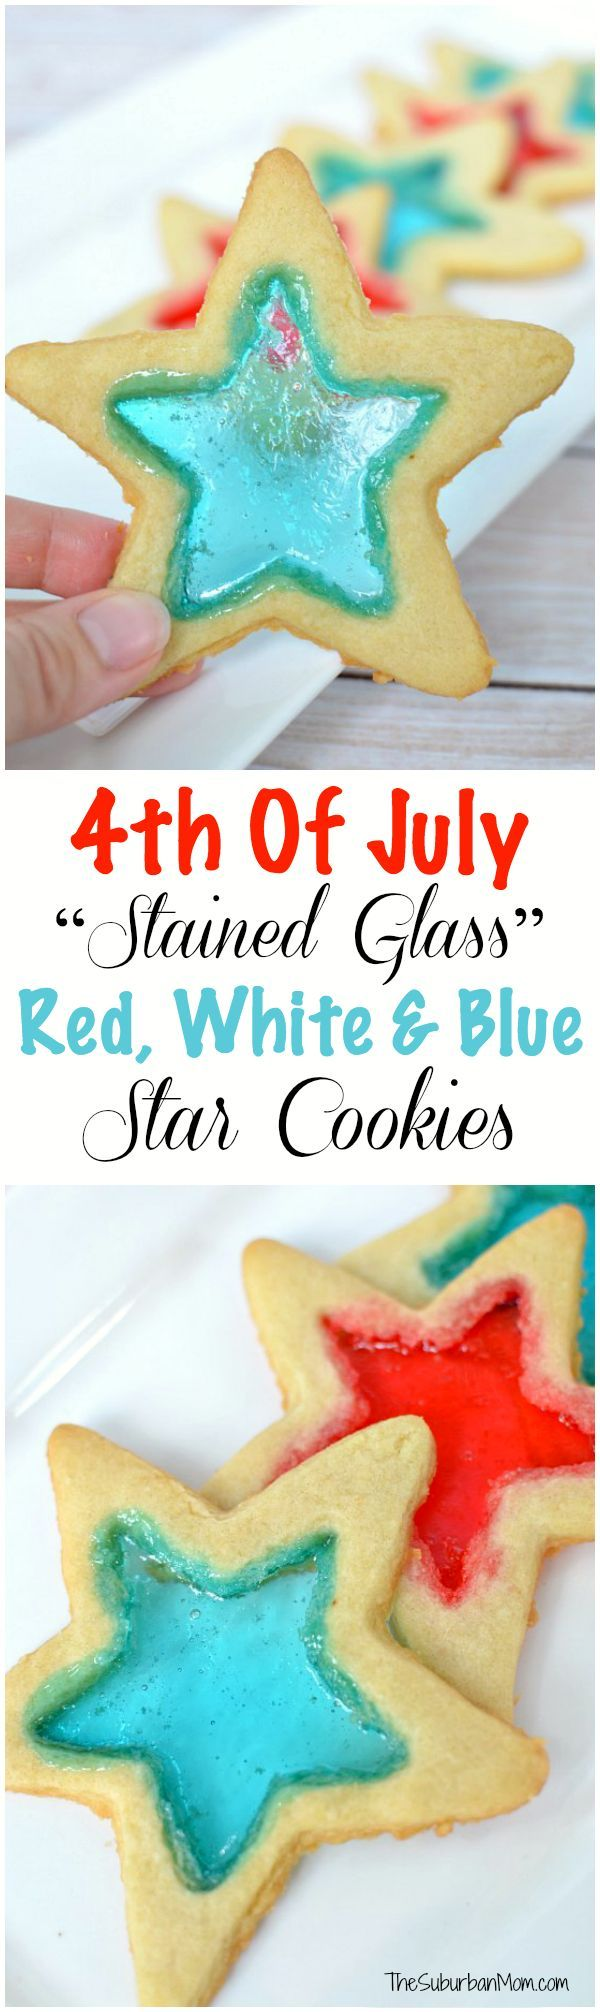 4th Of July Stained Glass Red, White & Blue Star Cookies. These stunning cookies are sure to draw attention at your party, and they are easier than they look.